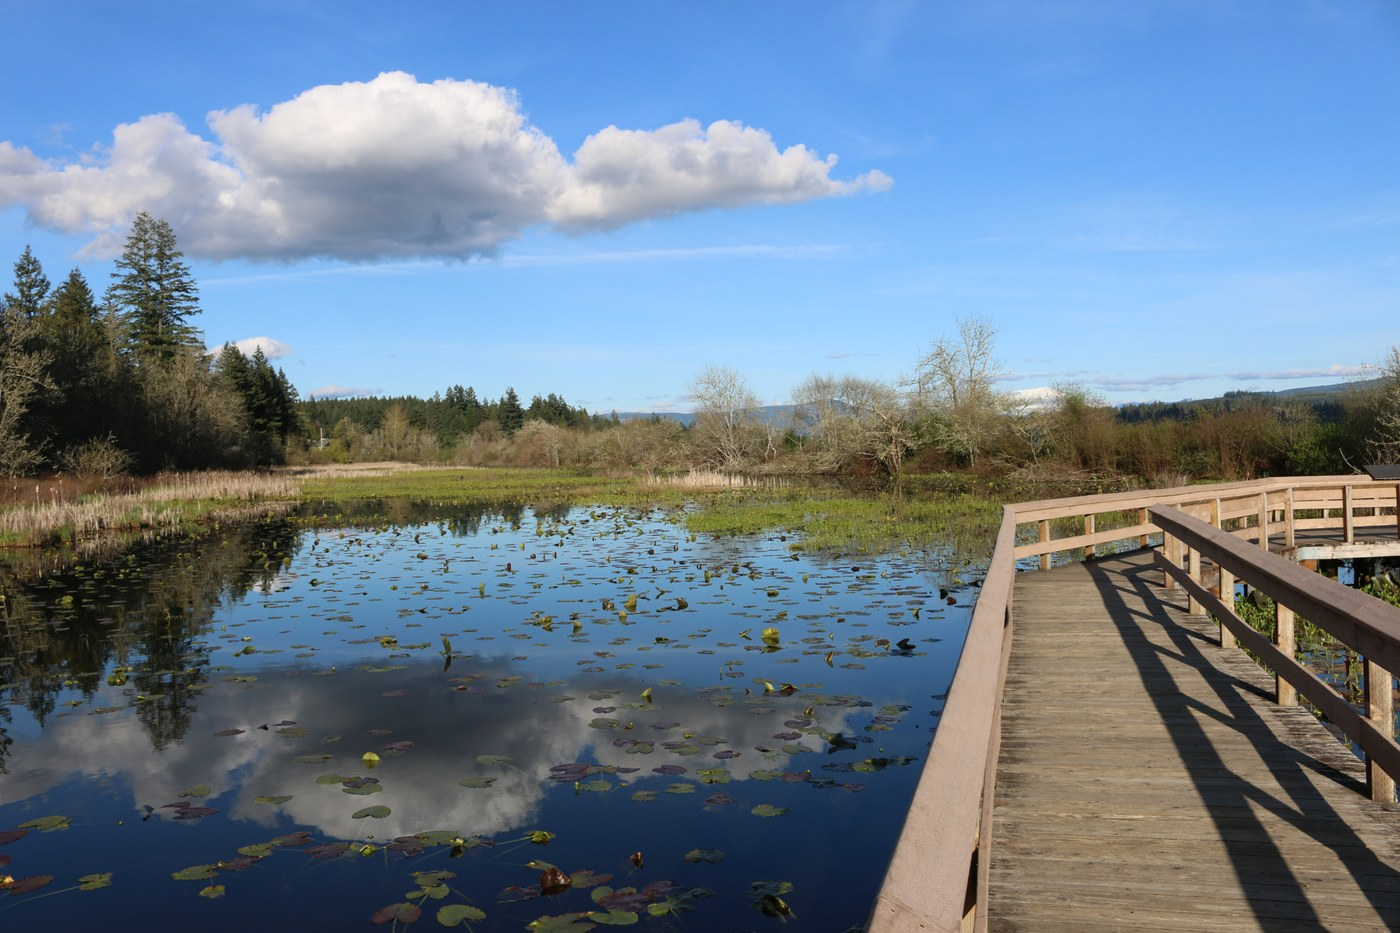 The boardwalk at Seaquest State Park. Photo by Eric & KJ.